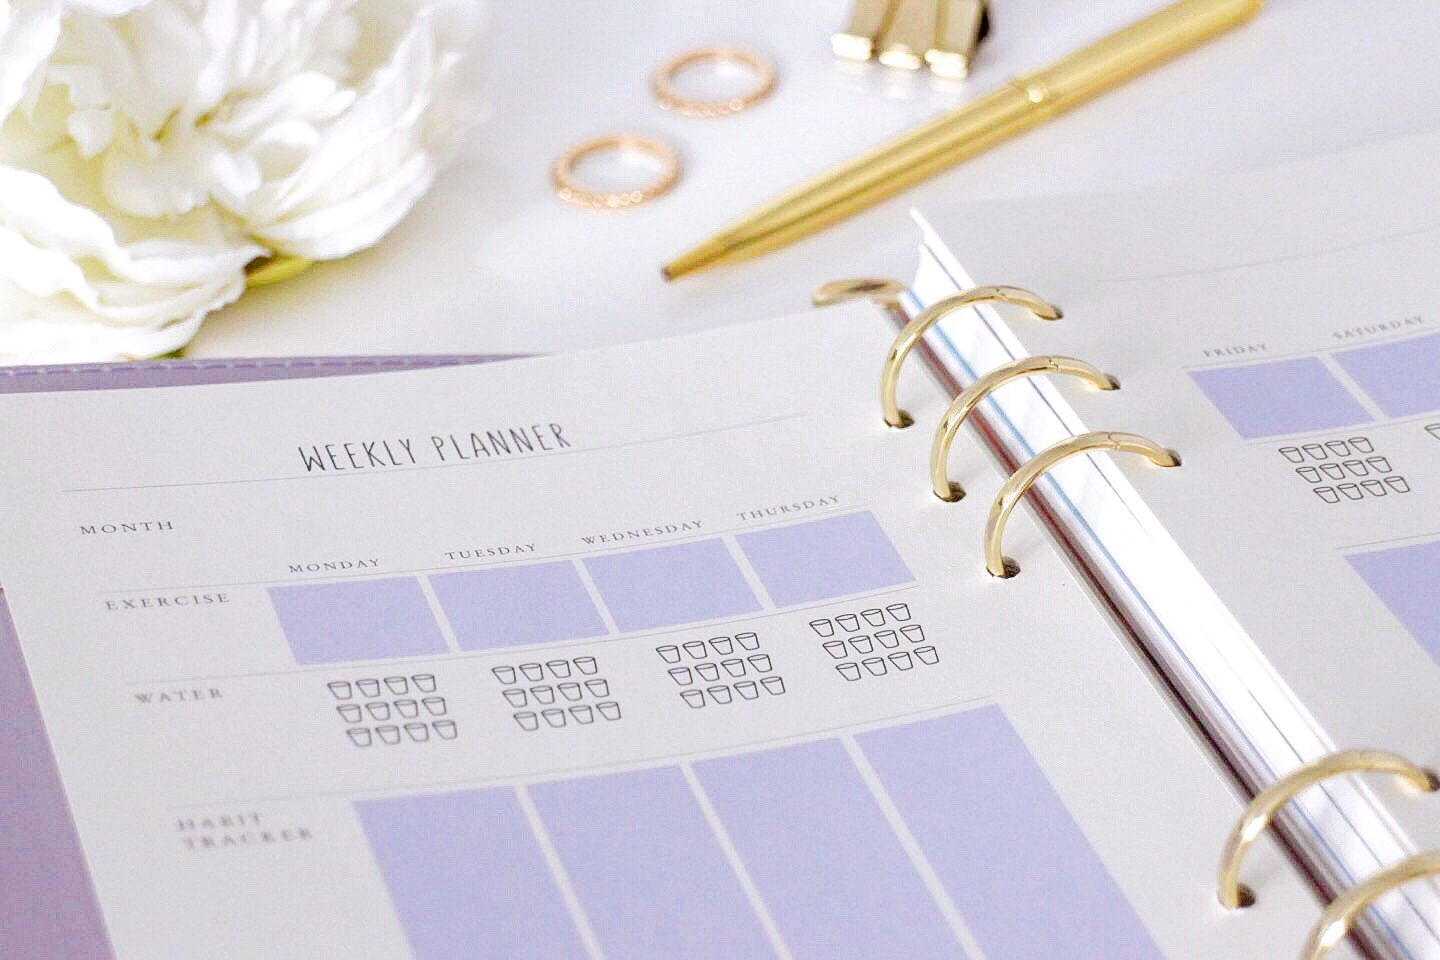 Paper chase Lifestyle Planner